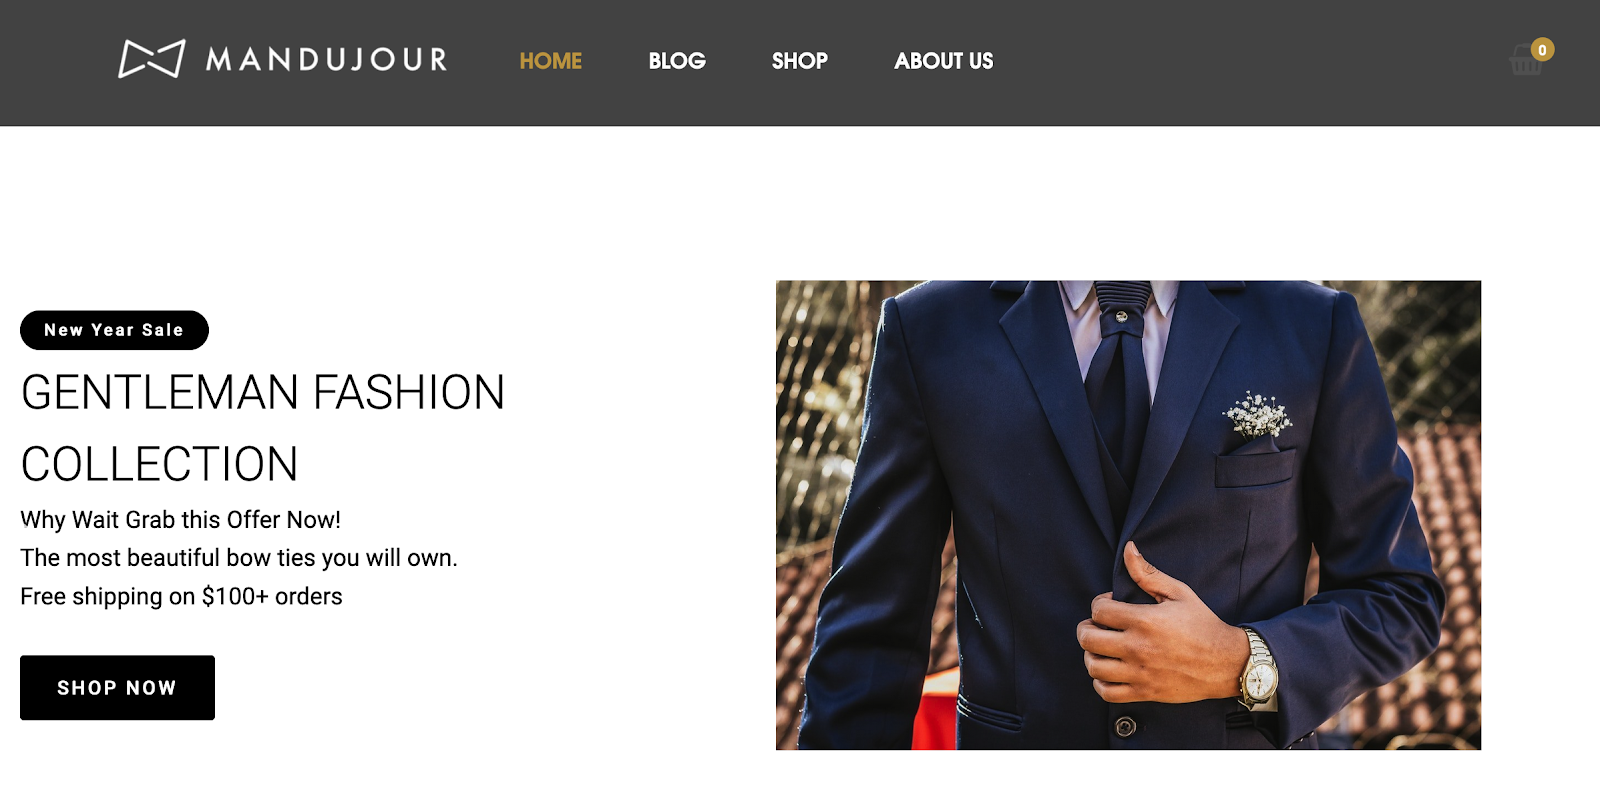 Gentleman Fashion Collection: Mandujour